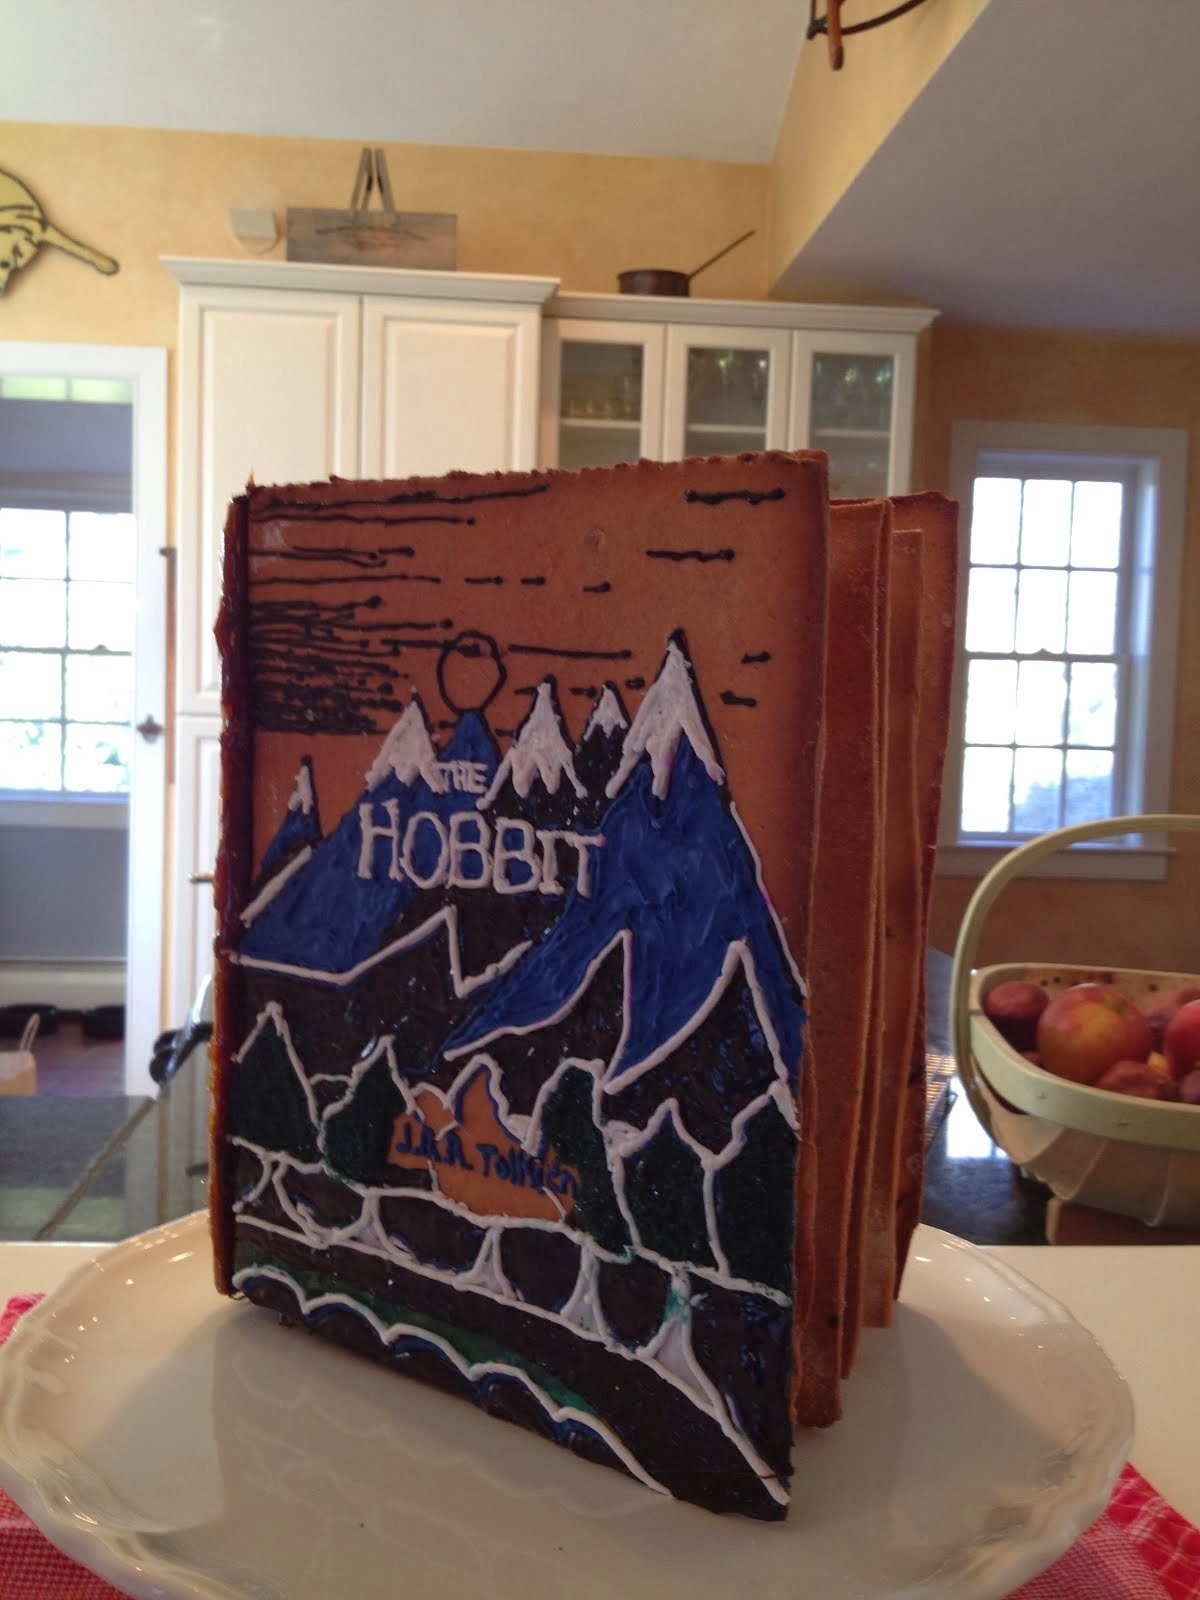 The Hobbit (Original Cover) in Gingerbread